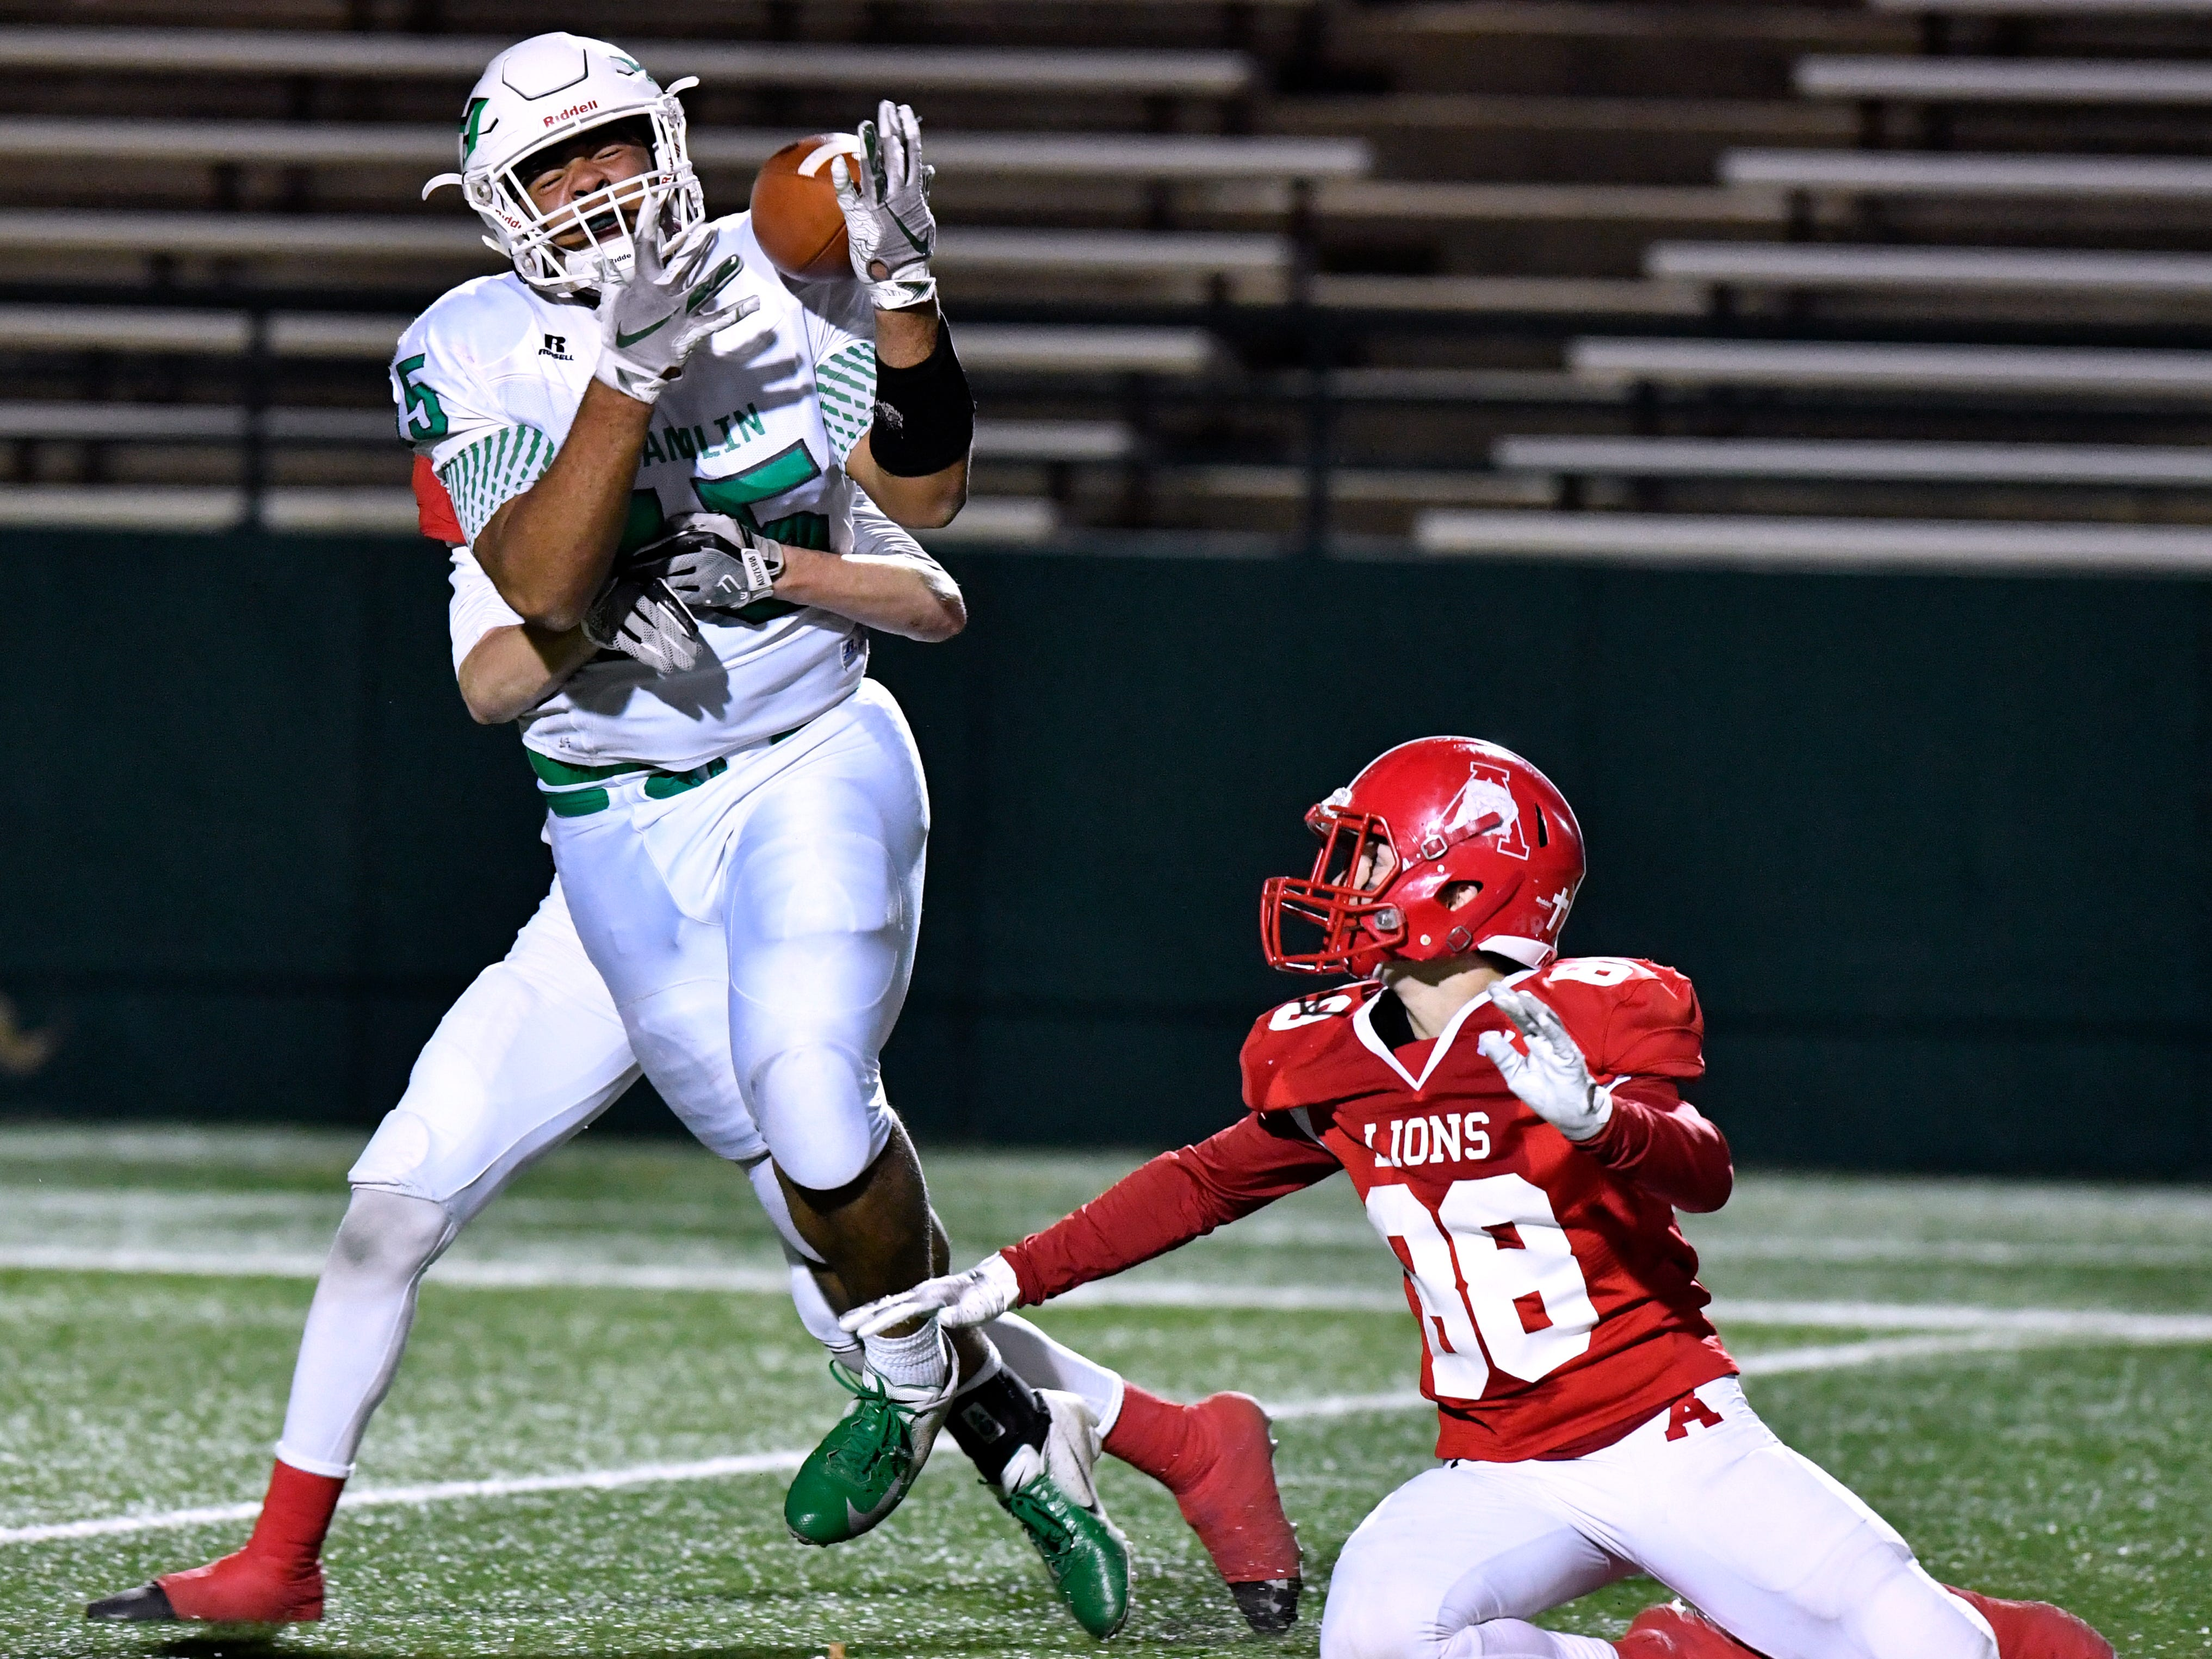 Hamlin tight end Austin Lozano tries to receive a pass but is fouled by an Albany Lion during Thursday's Class 2A Division II quarterfinal game at Shotwell Stadium Dec. 6, 2018. Final score was 41-28, Albany.